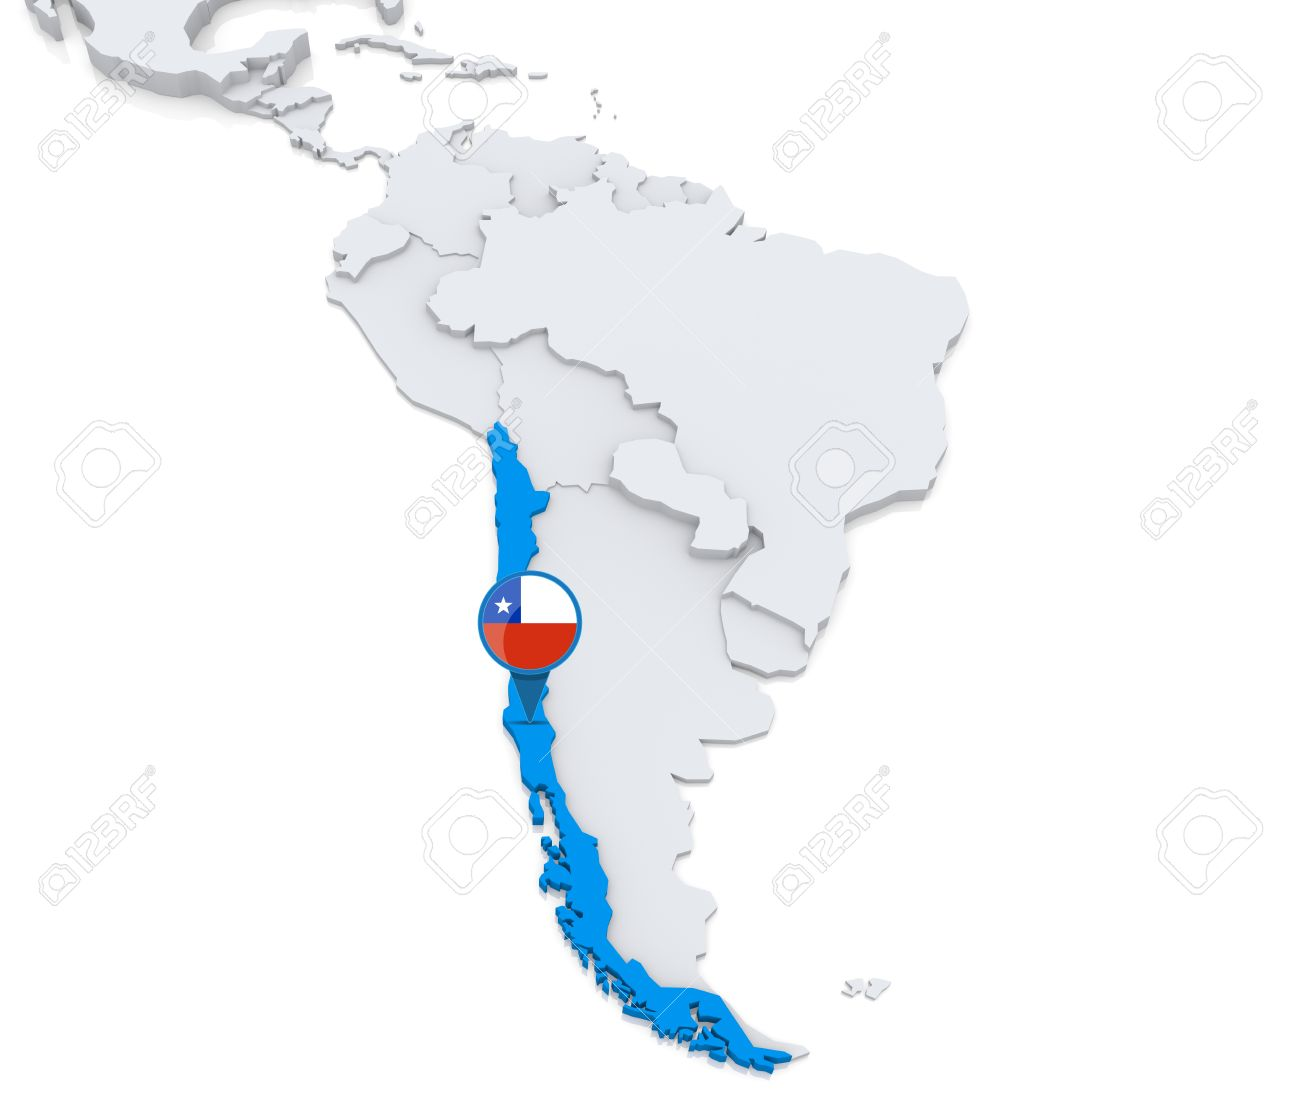 Highlighted Chile on map of south america